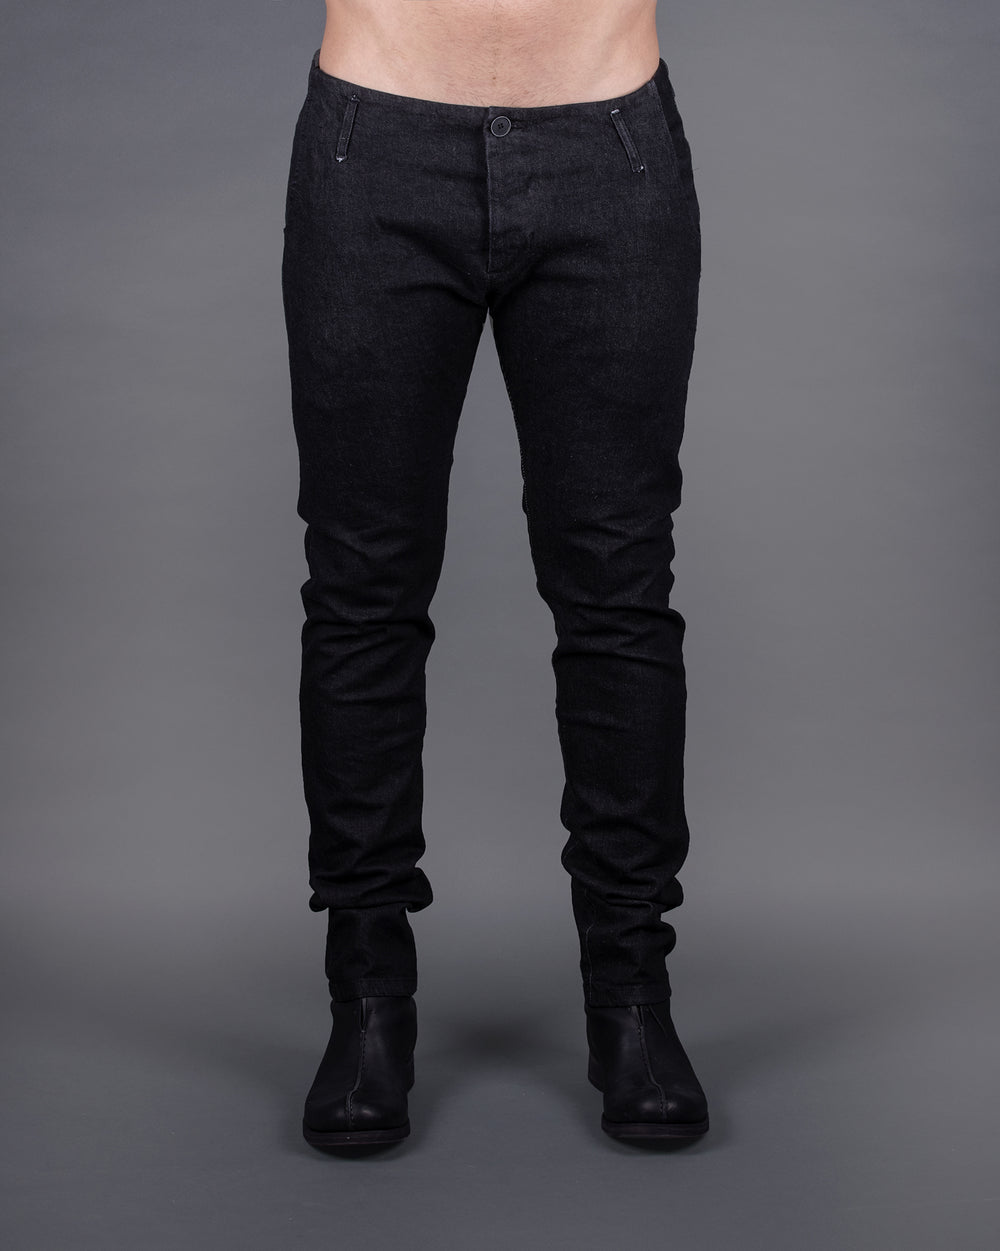 Hannibal Trousers - MUS